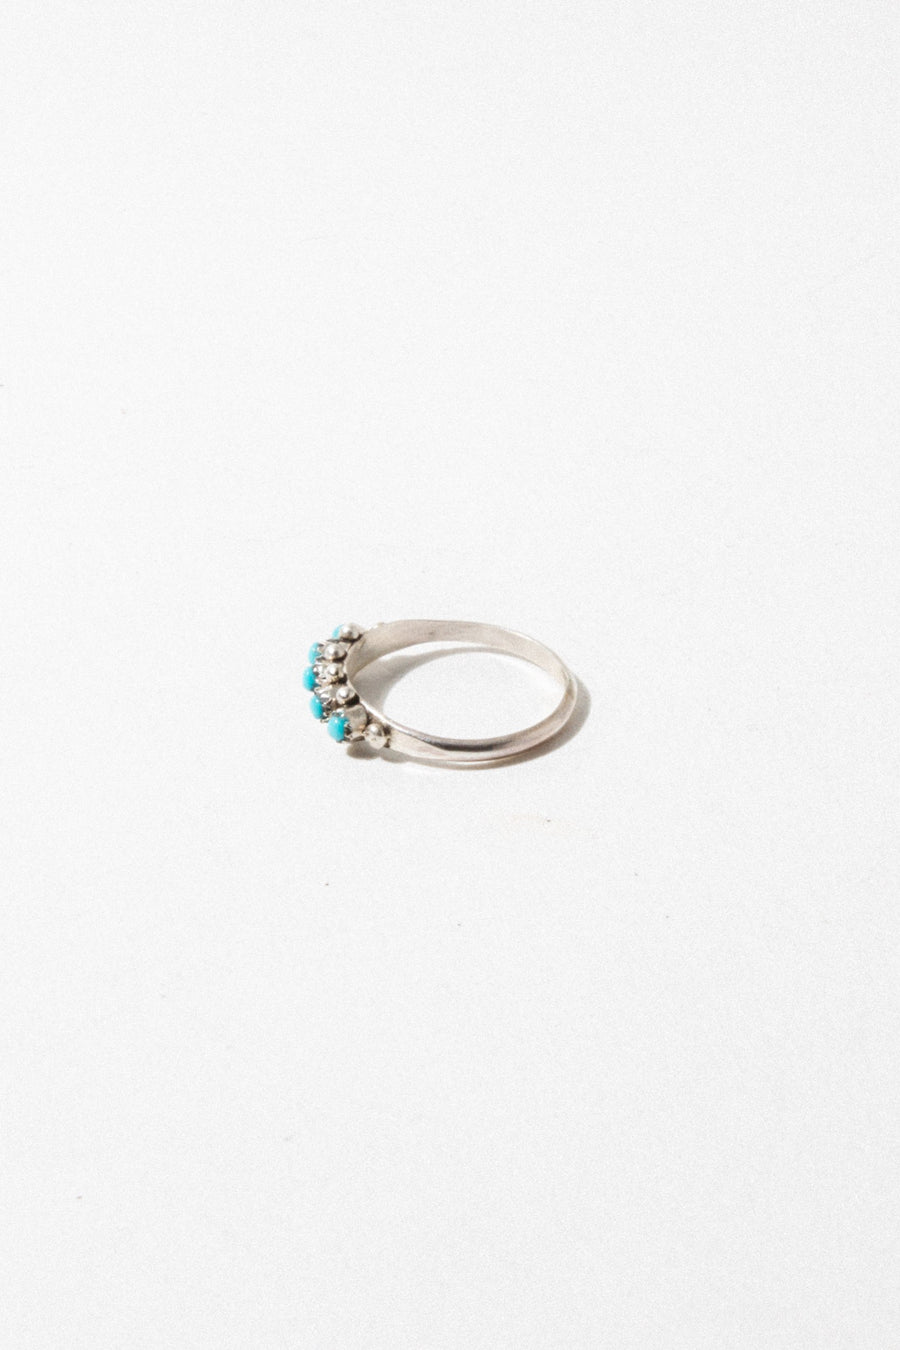 Child of Wild Jewelry Social Myth Turquoise ring